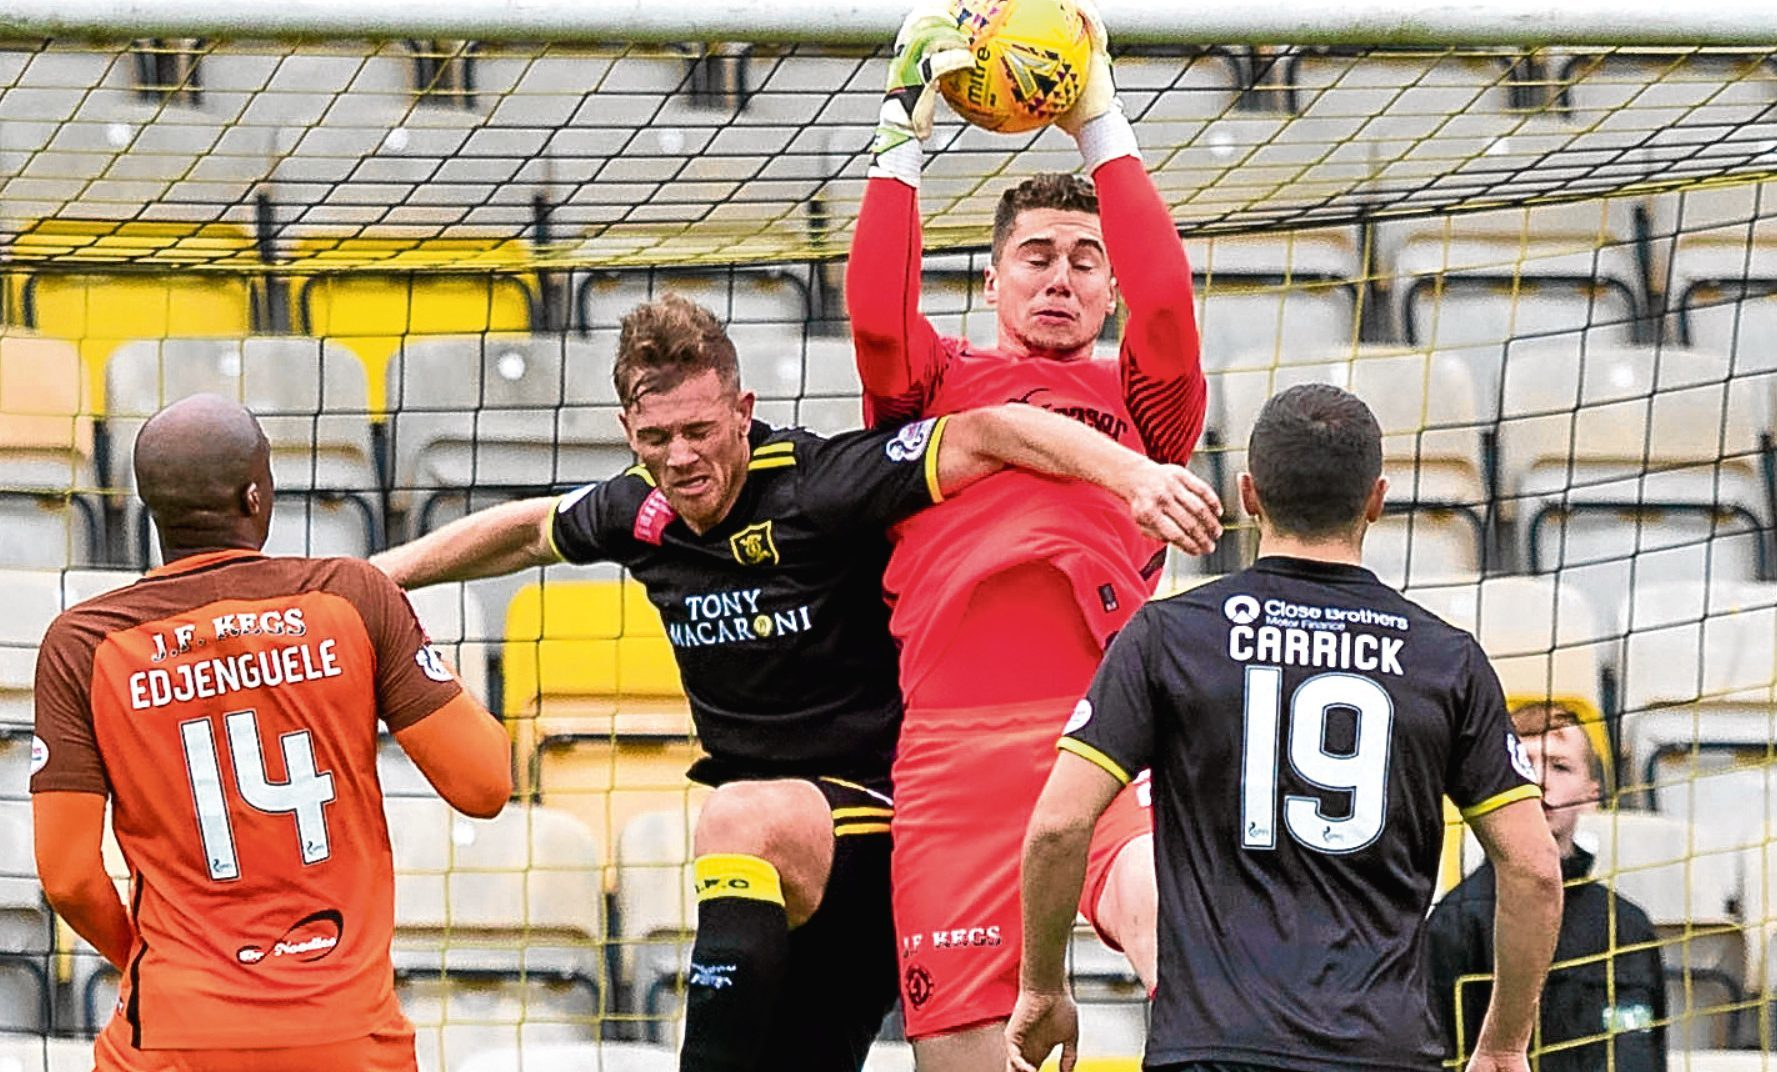 Harry Lewis goes up to collect the ball in Dundee United's 2-0 loss away to Livingston last Saturday. He is determined to put that defeat right against Inverness.